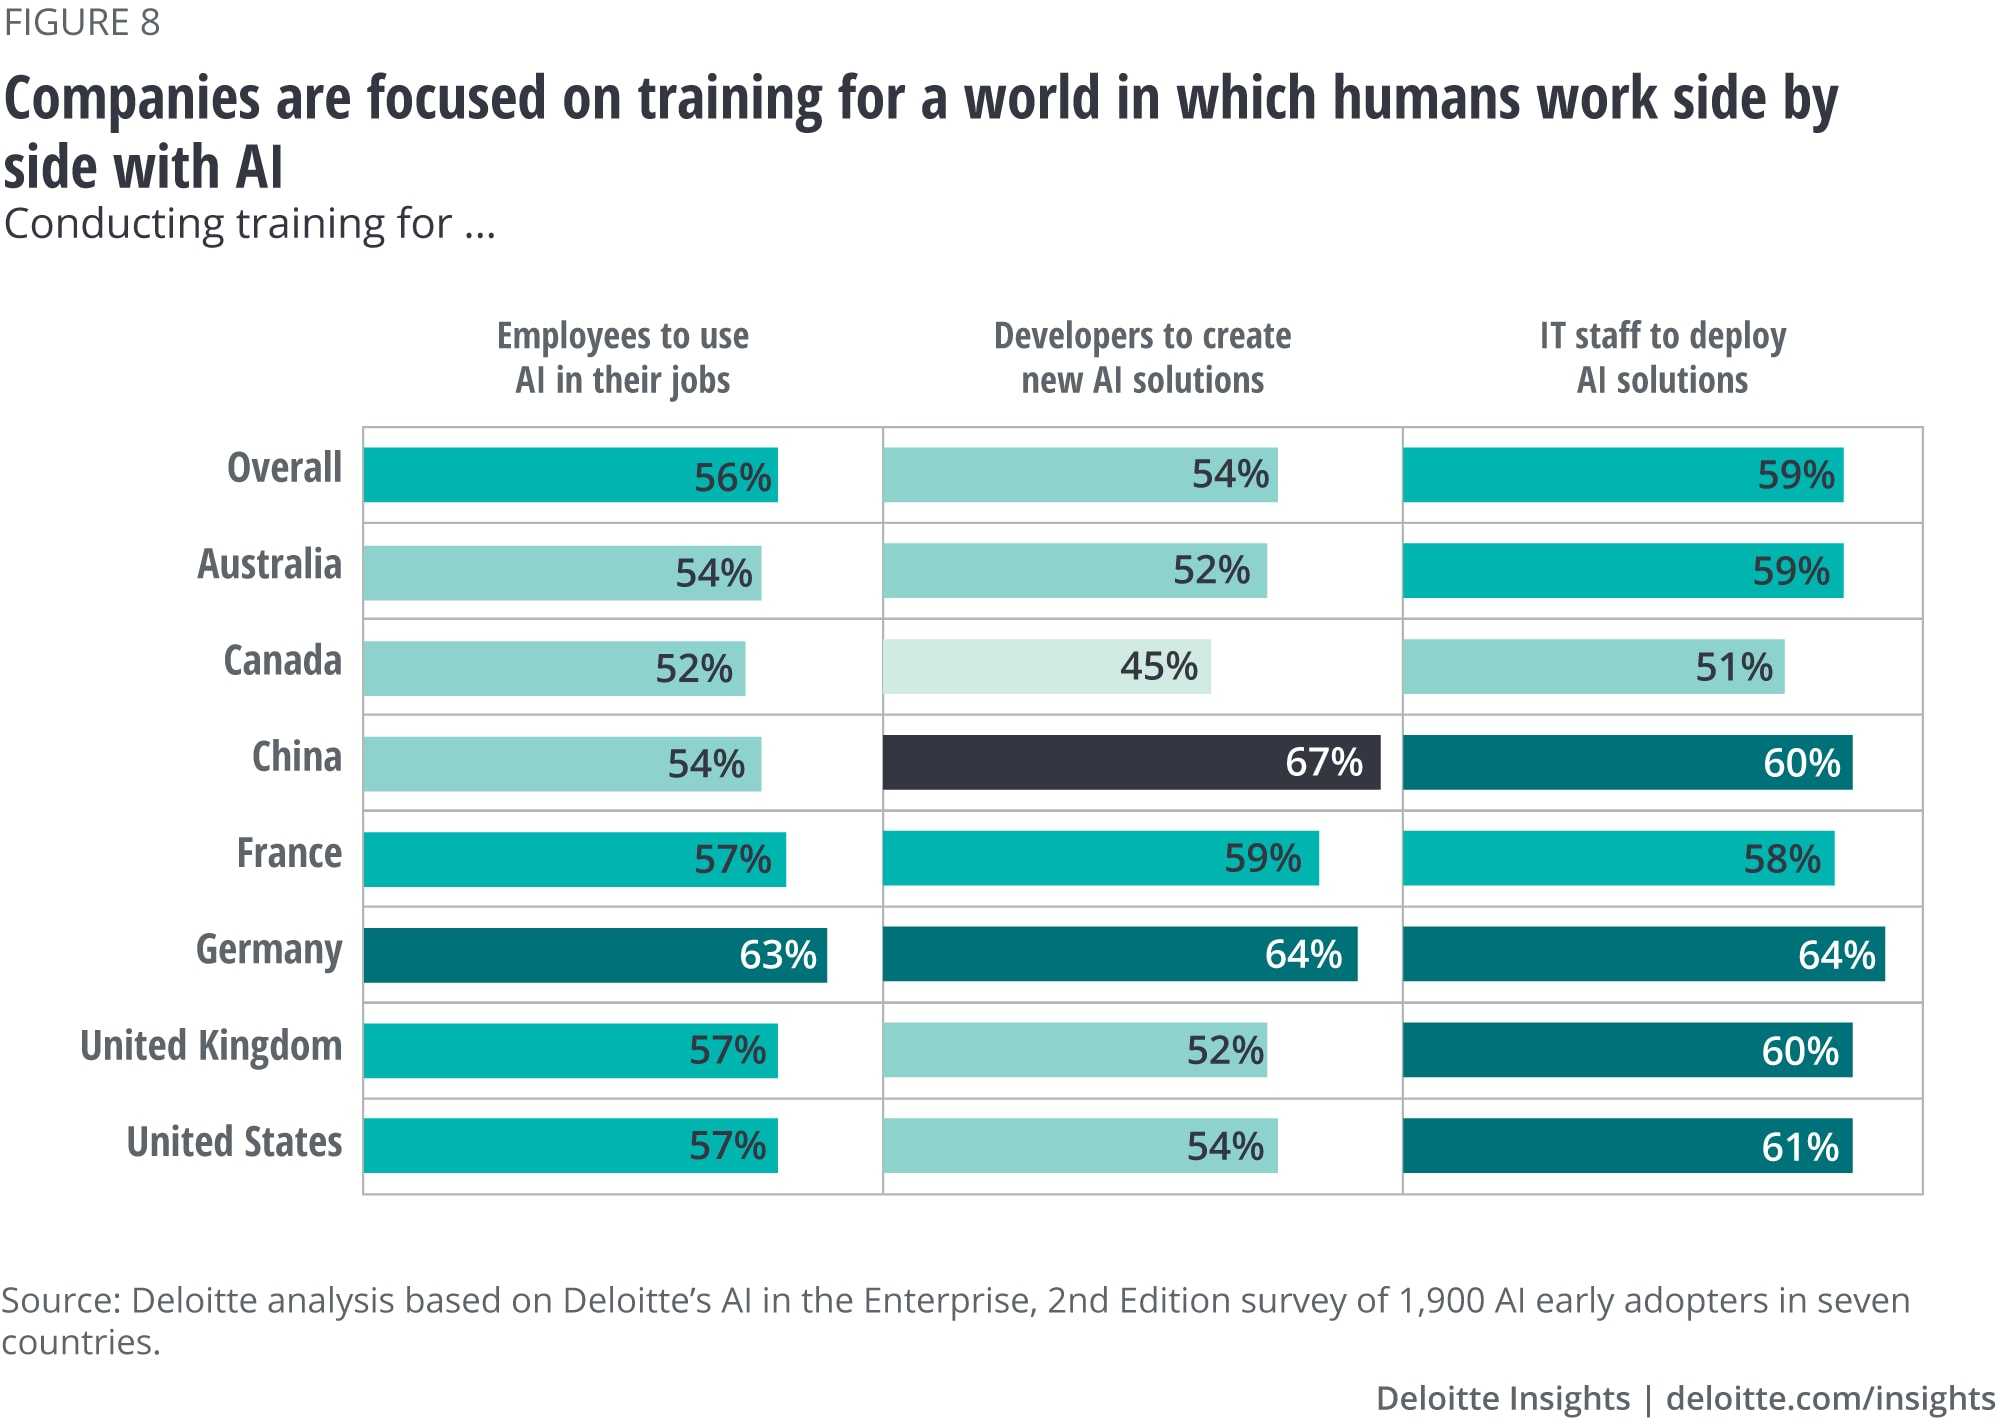 Companies are focused on training for a world in which humans work side-by-side with AI